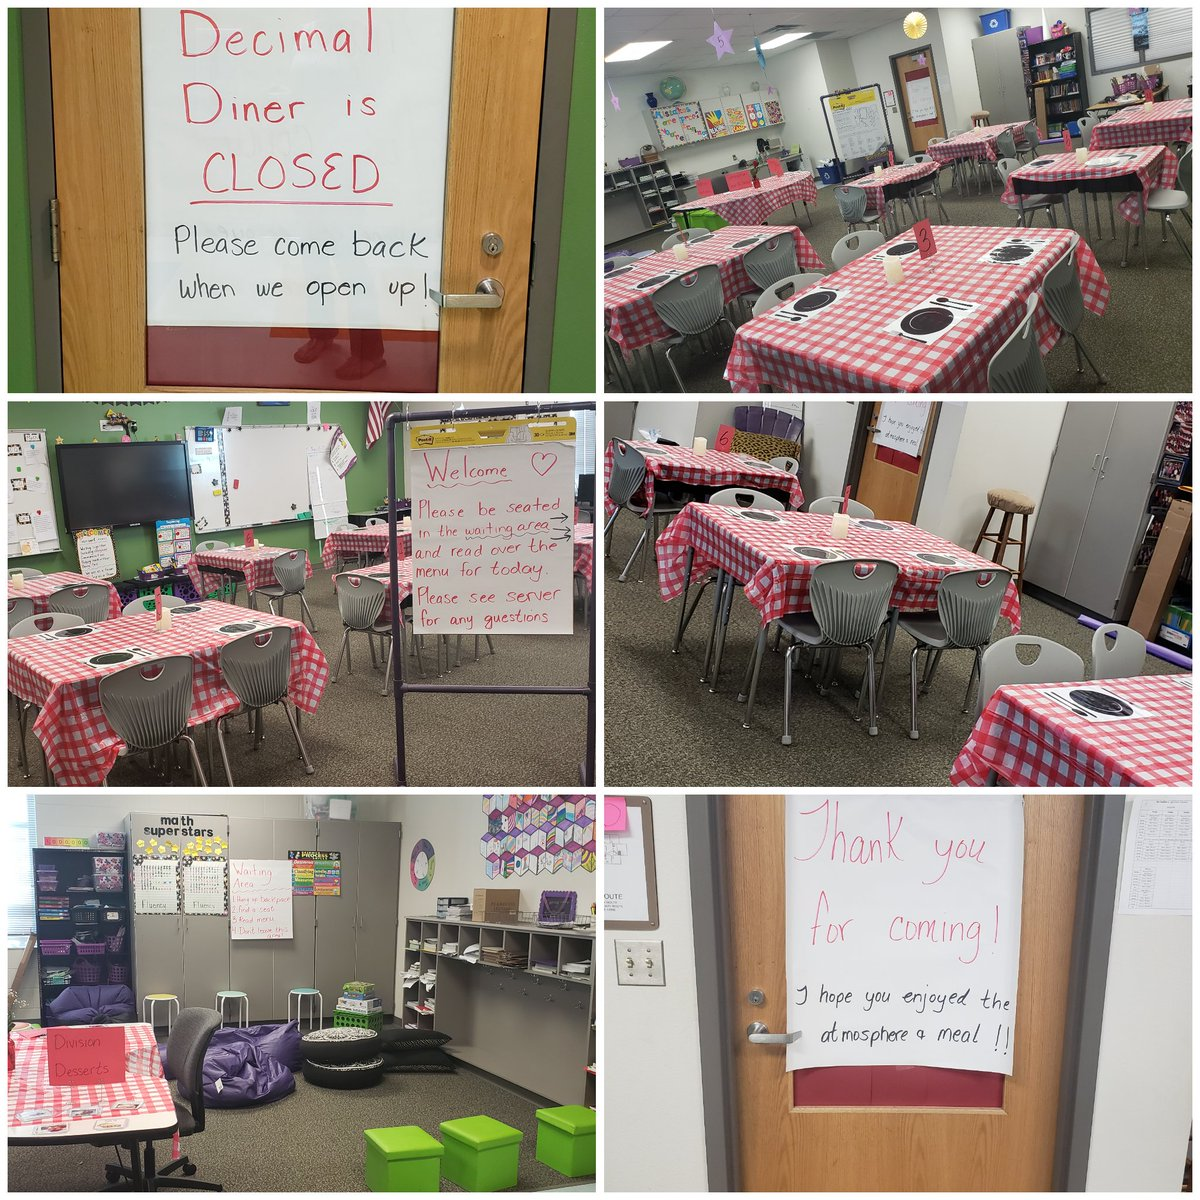 Ready for Decimal Diner! Can't wait for my customers tomorrow! #bethewildcard #iteachmath #lovemyjob